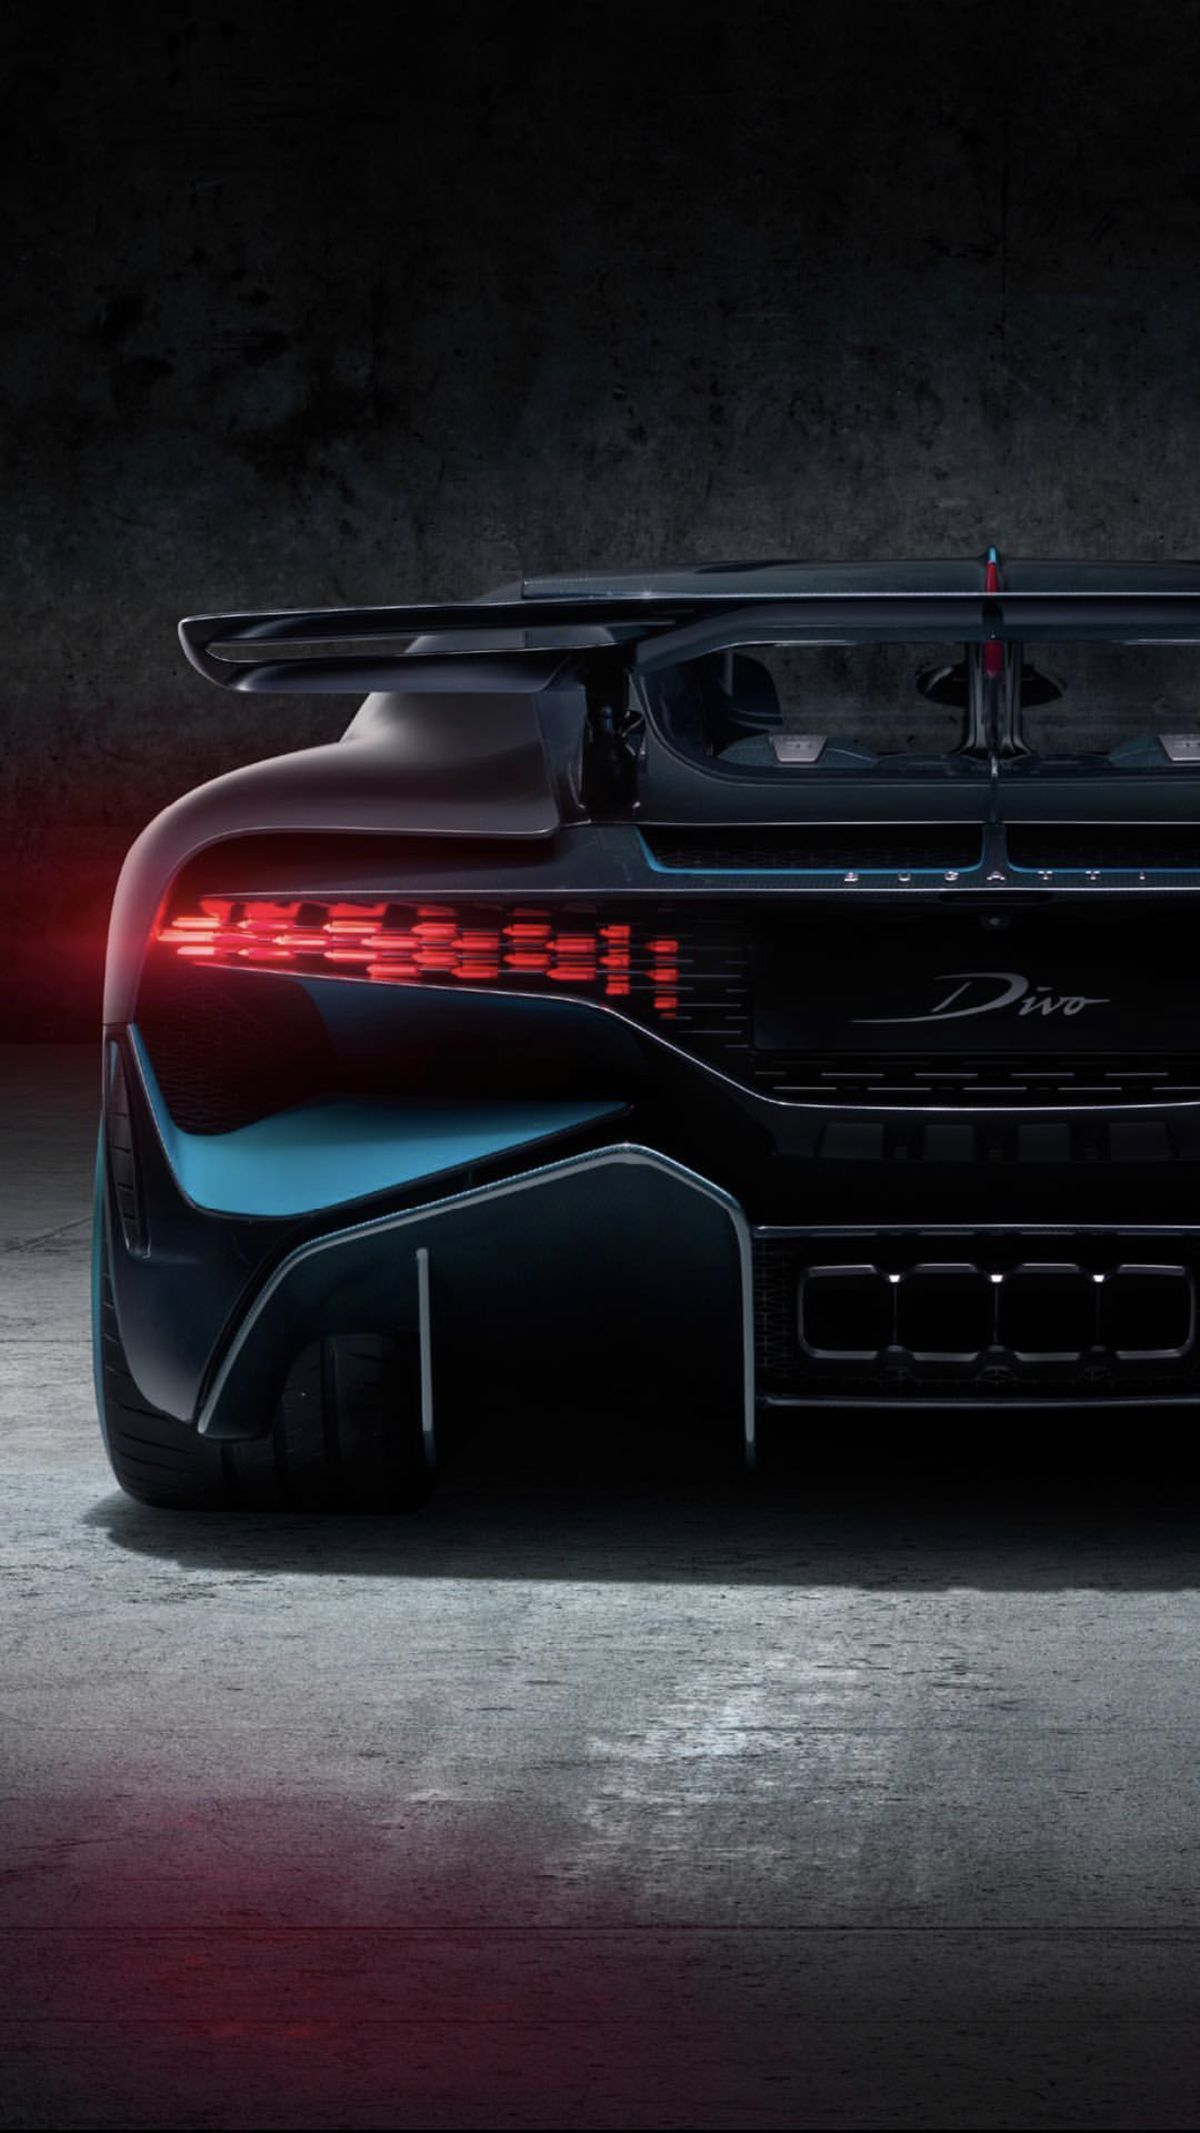 Bugatti Divo Rear View Sports Cars Luxury Fast Sports Cars Bugatti